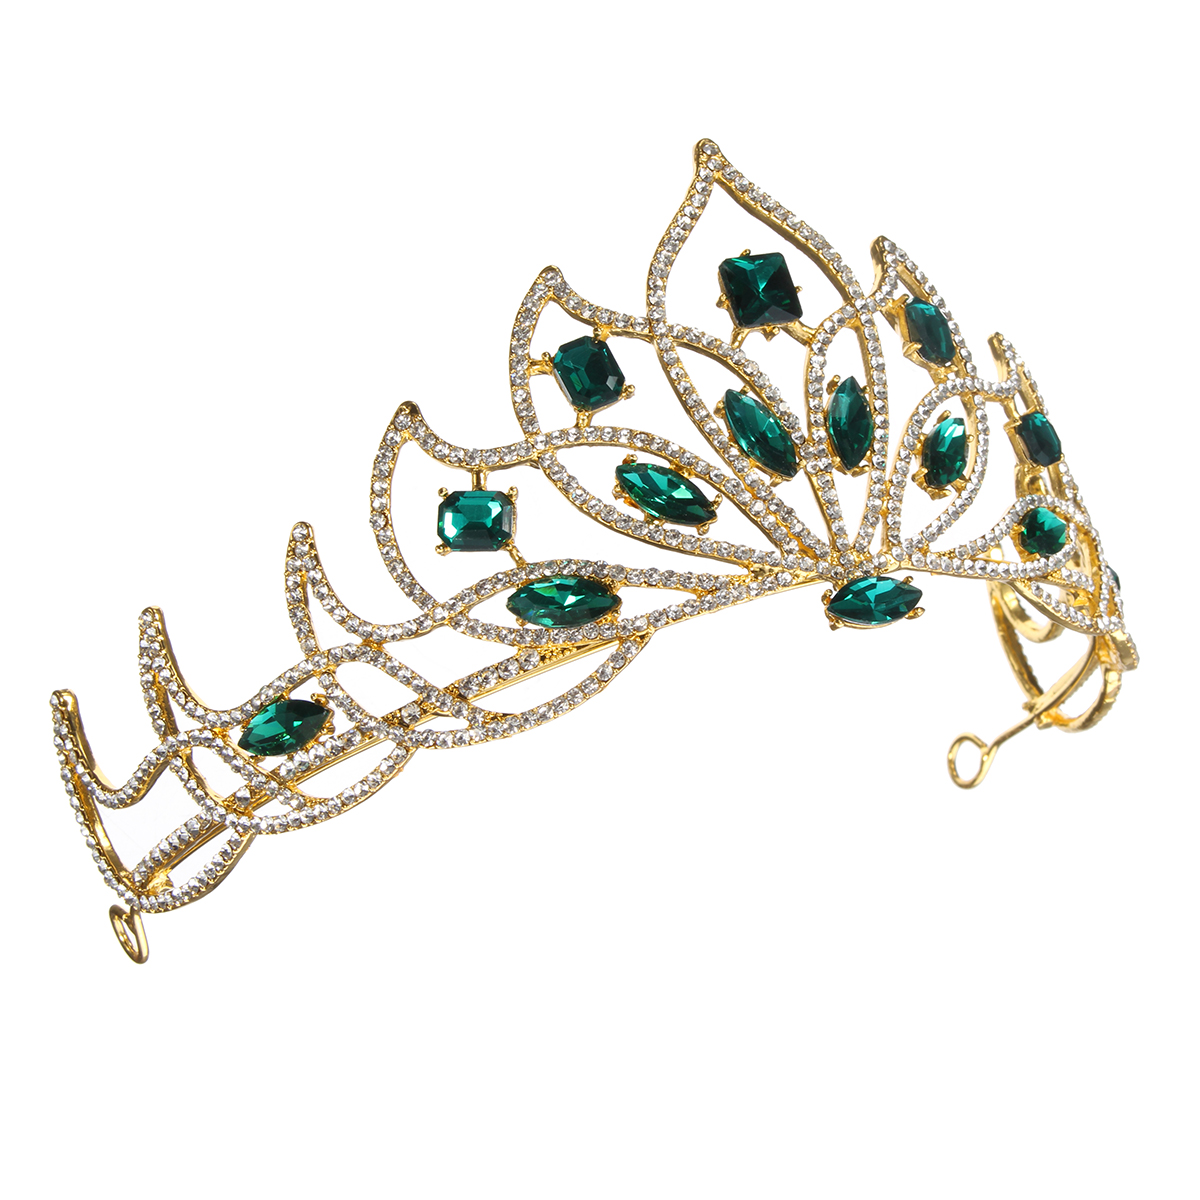 Bride Gold Green Rhinestone Crystal Tiara Crown Princess Queen Wedding Bridal Party Headpiece